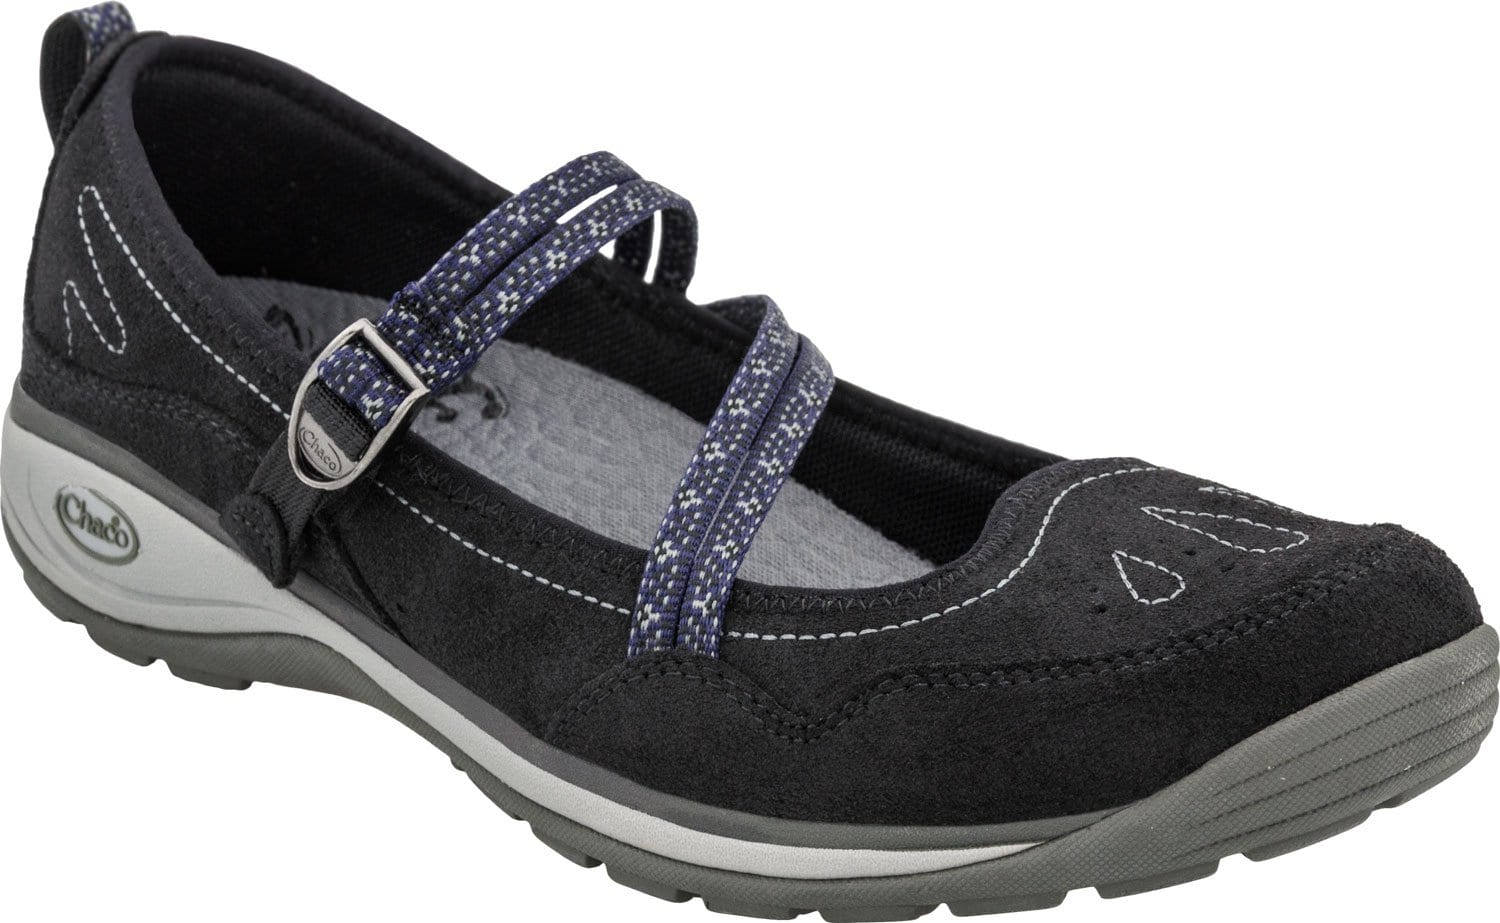 kitchen safety shoes for women the fat burning chaco petaluma mj